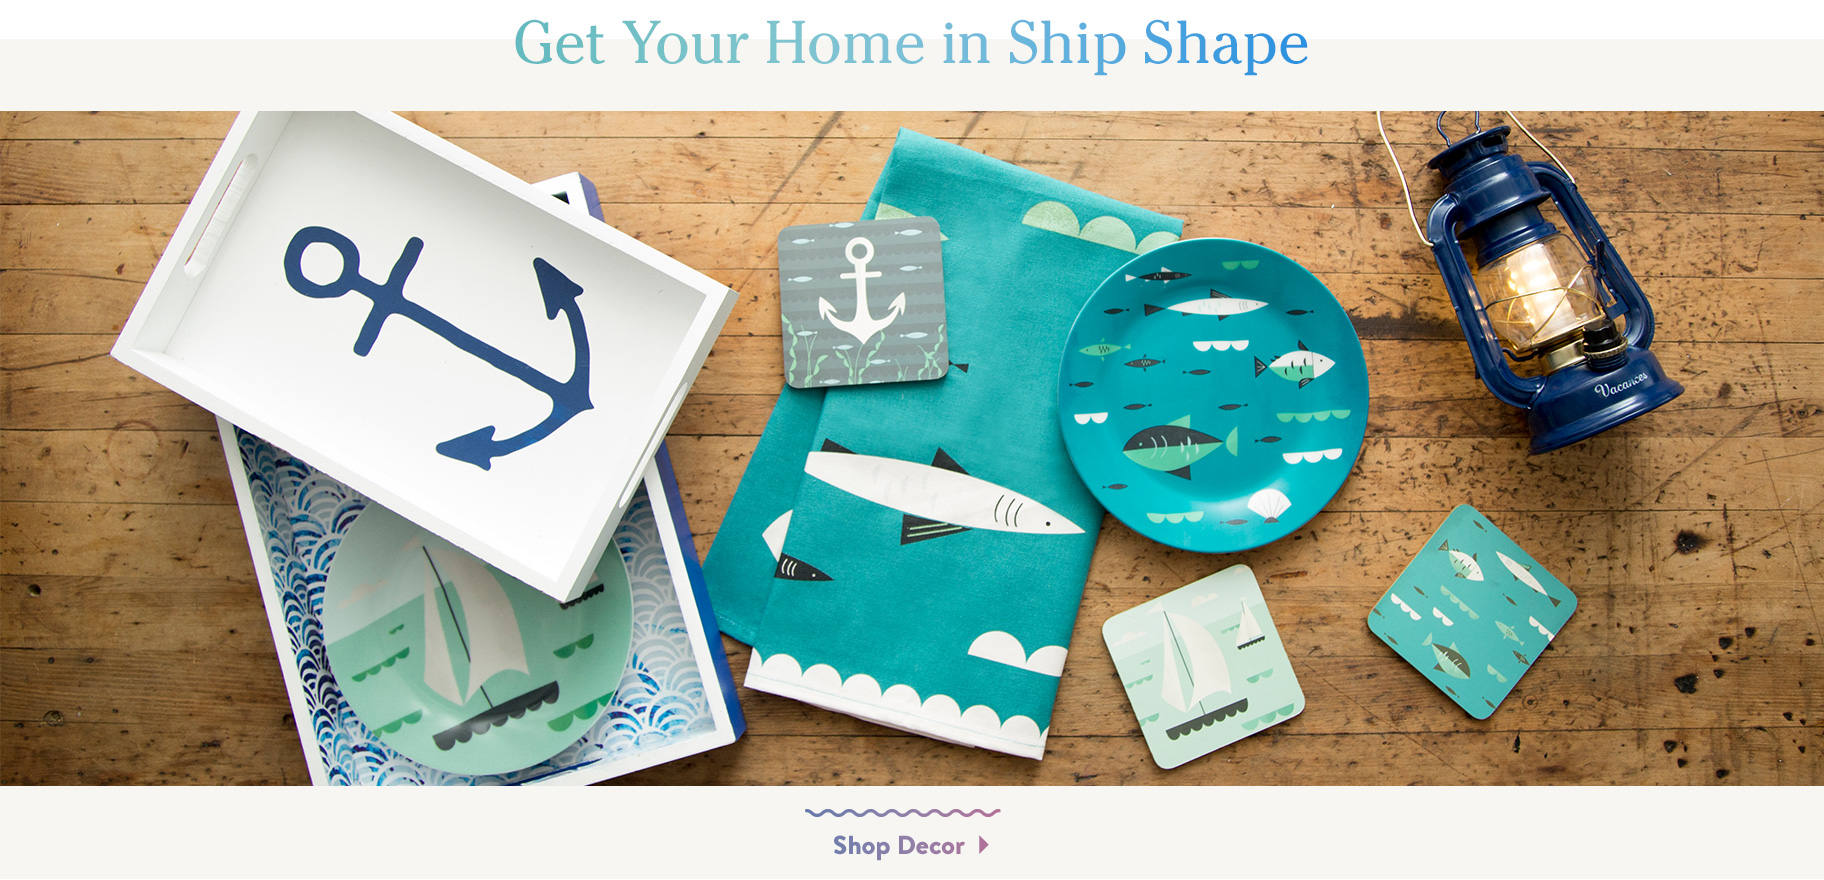 Get Your Home in Ship Shape. Shop Decor.